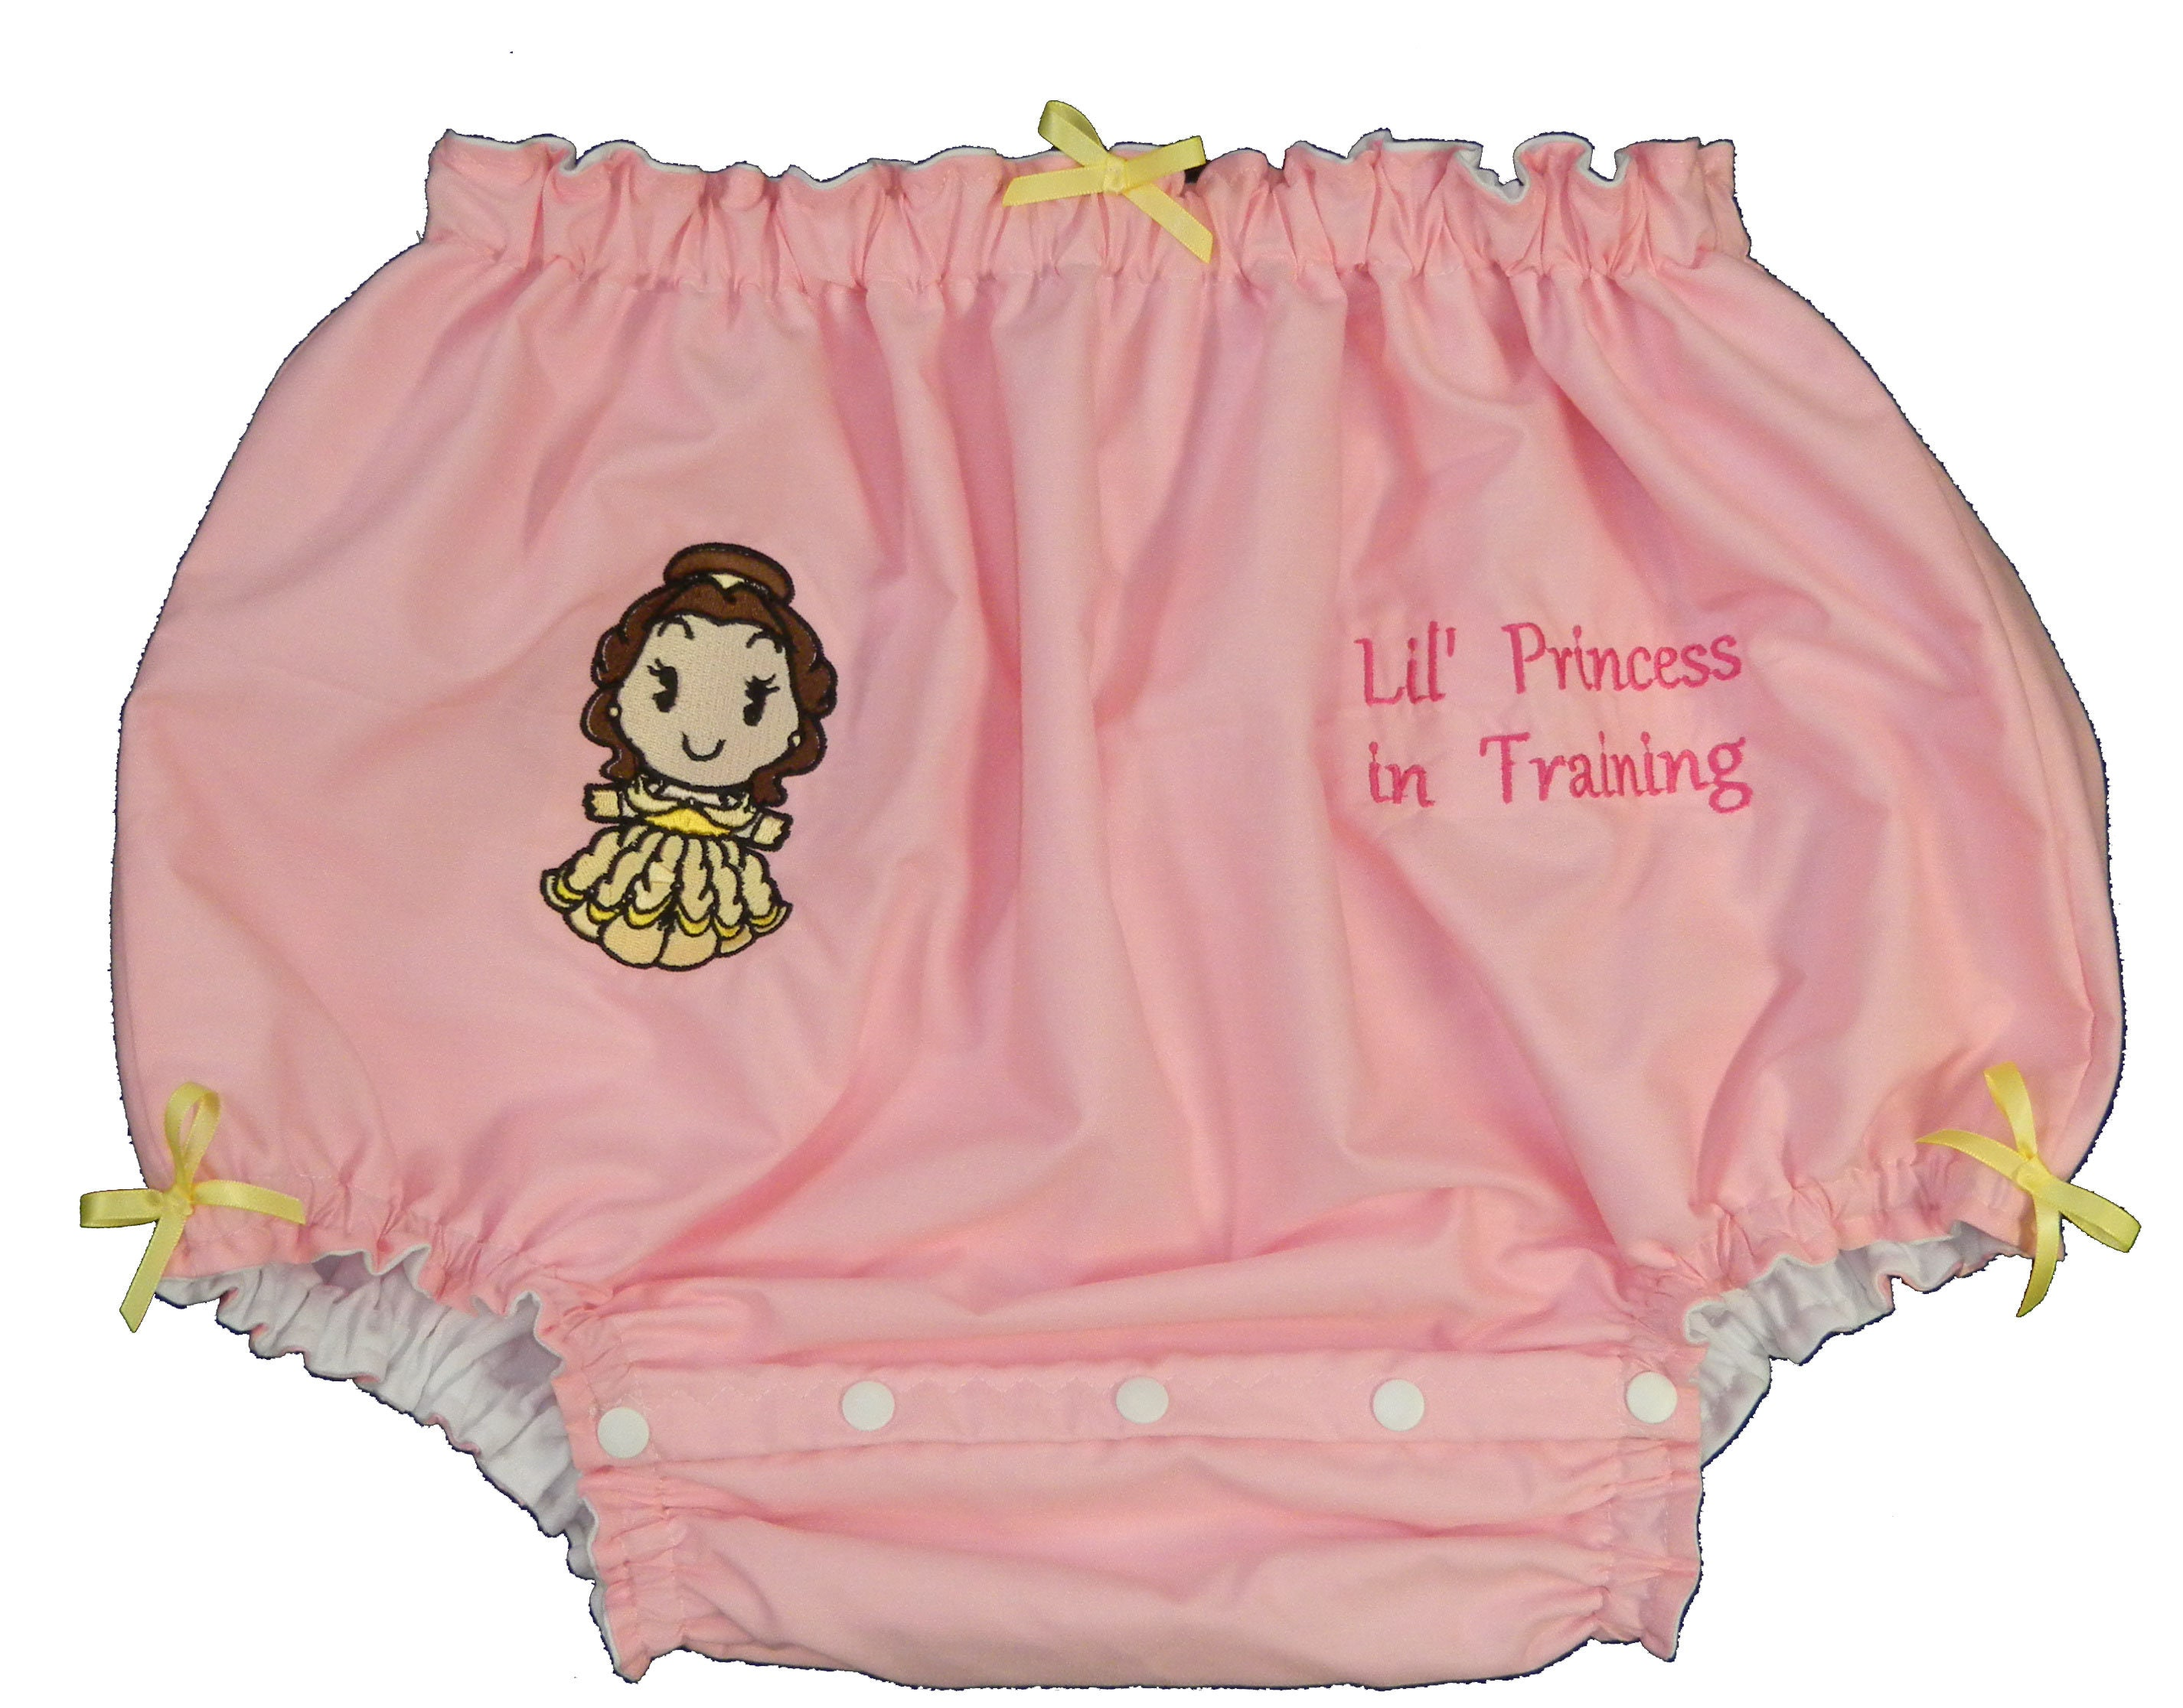 Adult Baby Sissy Littles abdl ~ BABY Cover Princess BELLE Diaper Cover BABY PUL Lined Dress Up ~ Binkies n Bows 69192b